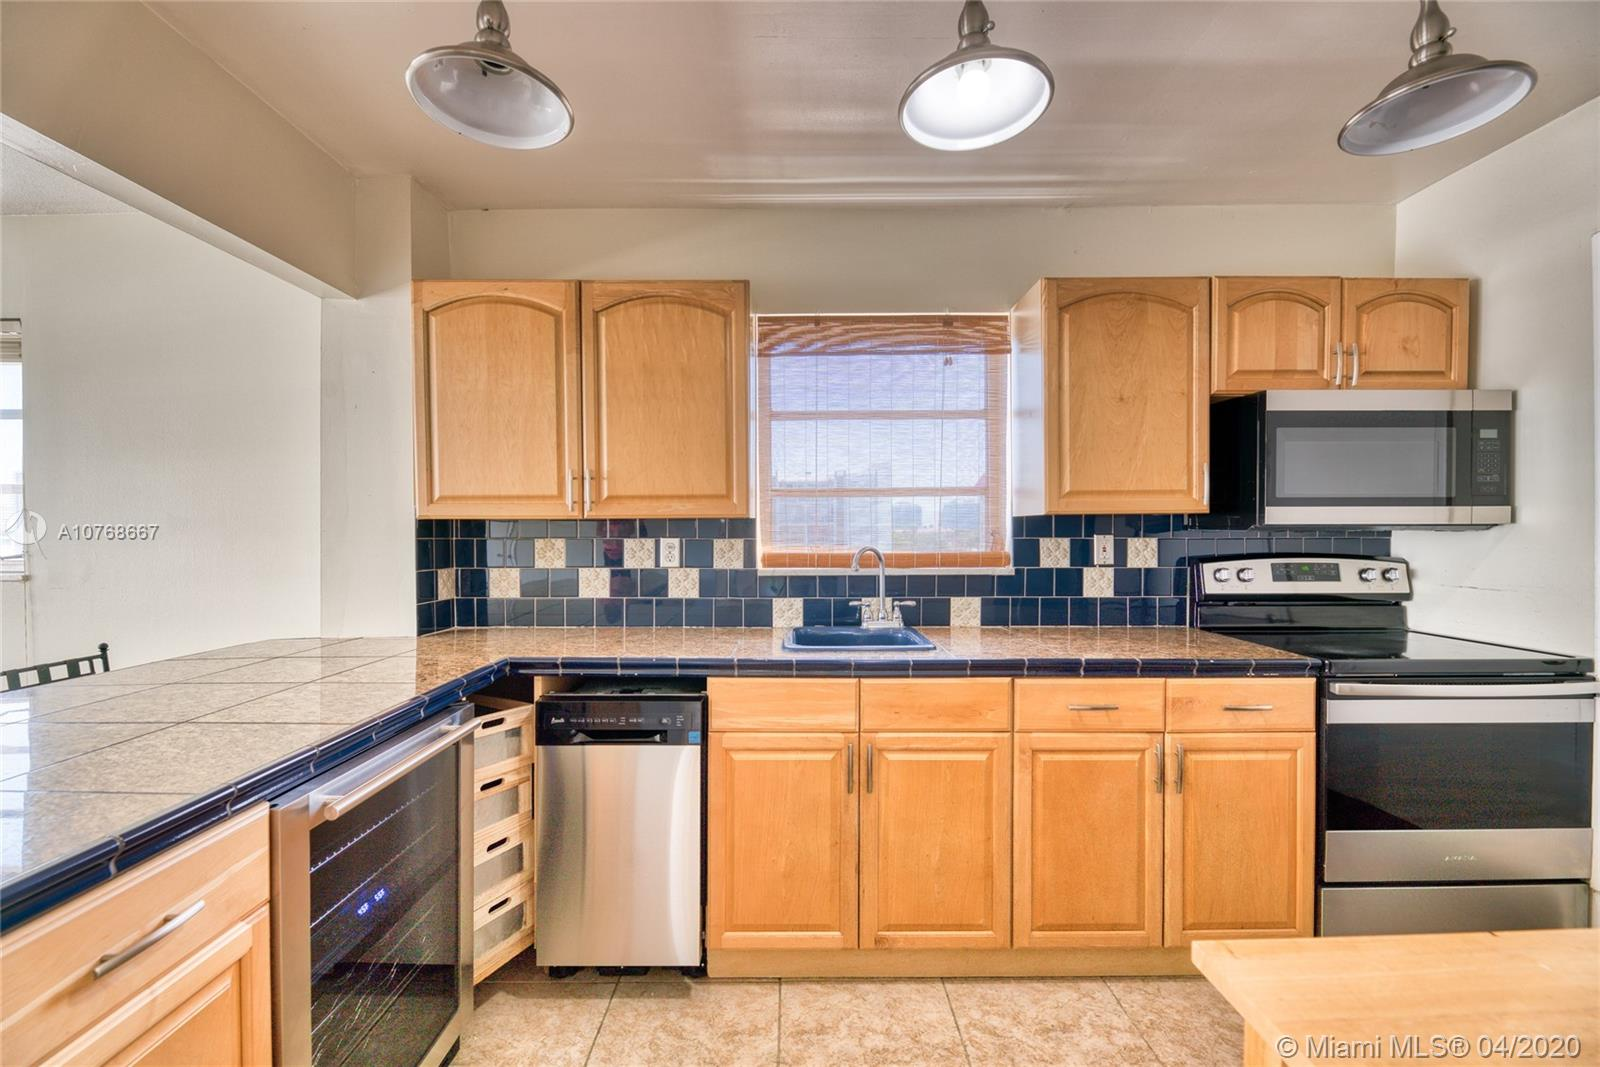 Best unit location in the building! Top floor, North side, double corner unit with views of the intracoastal from your living room and kitchen. Lots of windows with abundant natural light. Tile floors, both bedrooms have en suite baths. 12 units, 5 floors total. large storage unit, laundry on site, pool, parking. Great location, walk to beach, Bal Harbour shops, library, cafes, dinning, shops, house of worship. A+ K-8 school and much more! Can rent 1st year! LOCATION, LOCATION, LOCATION!